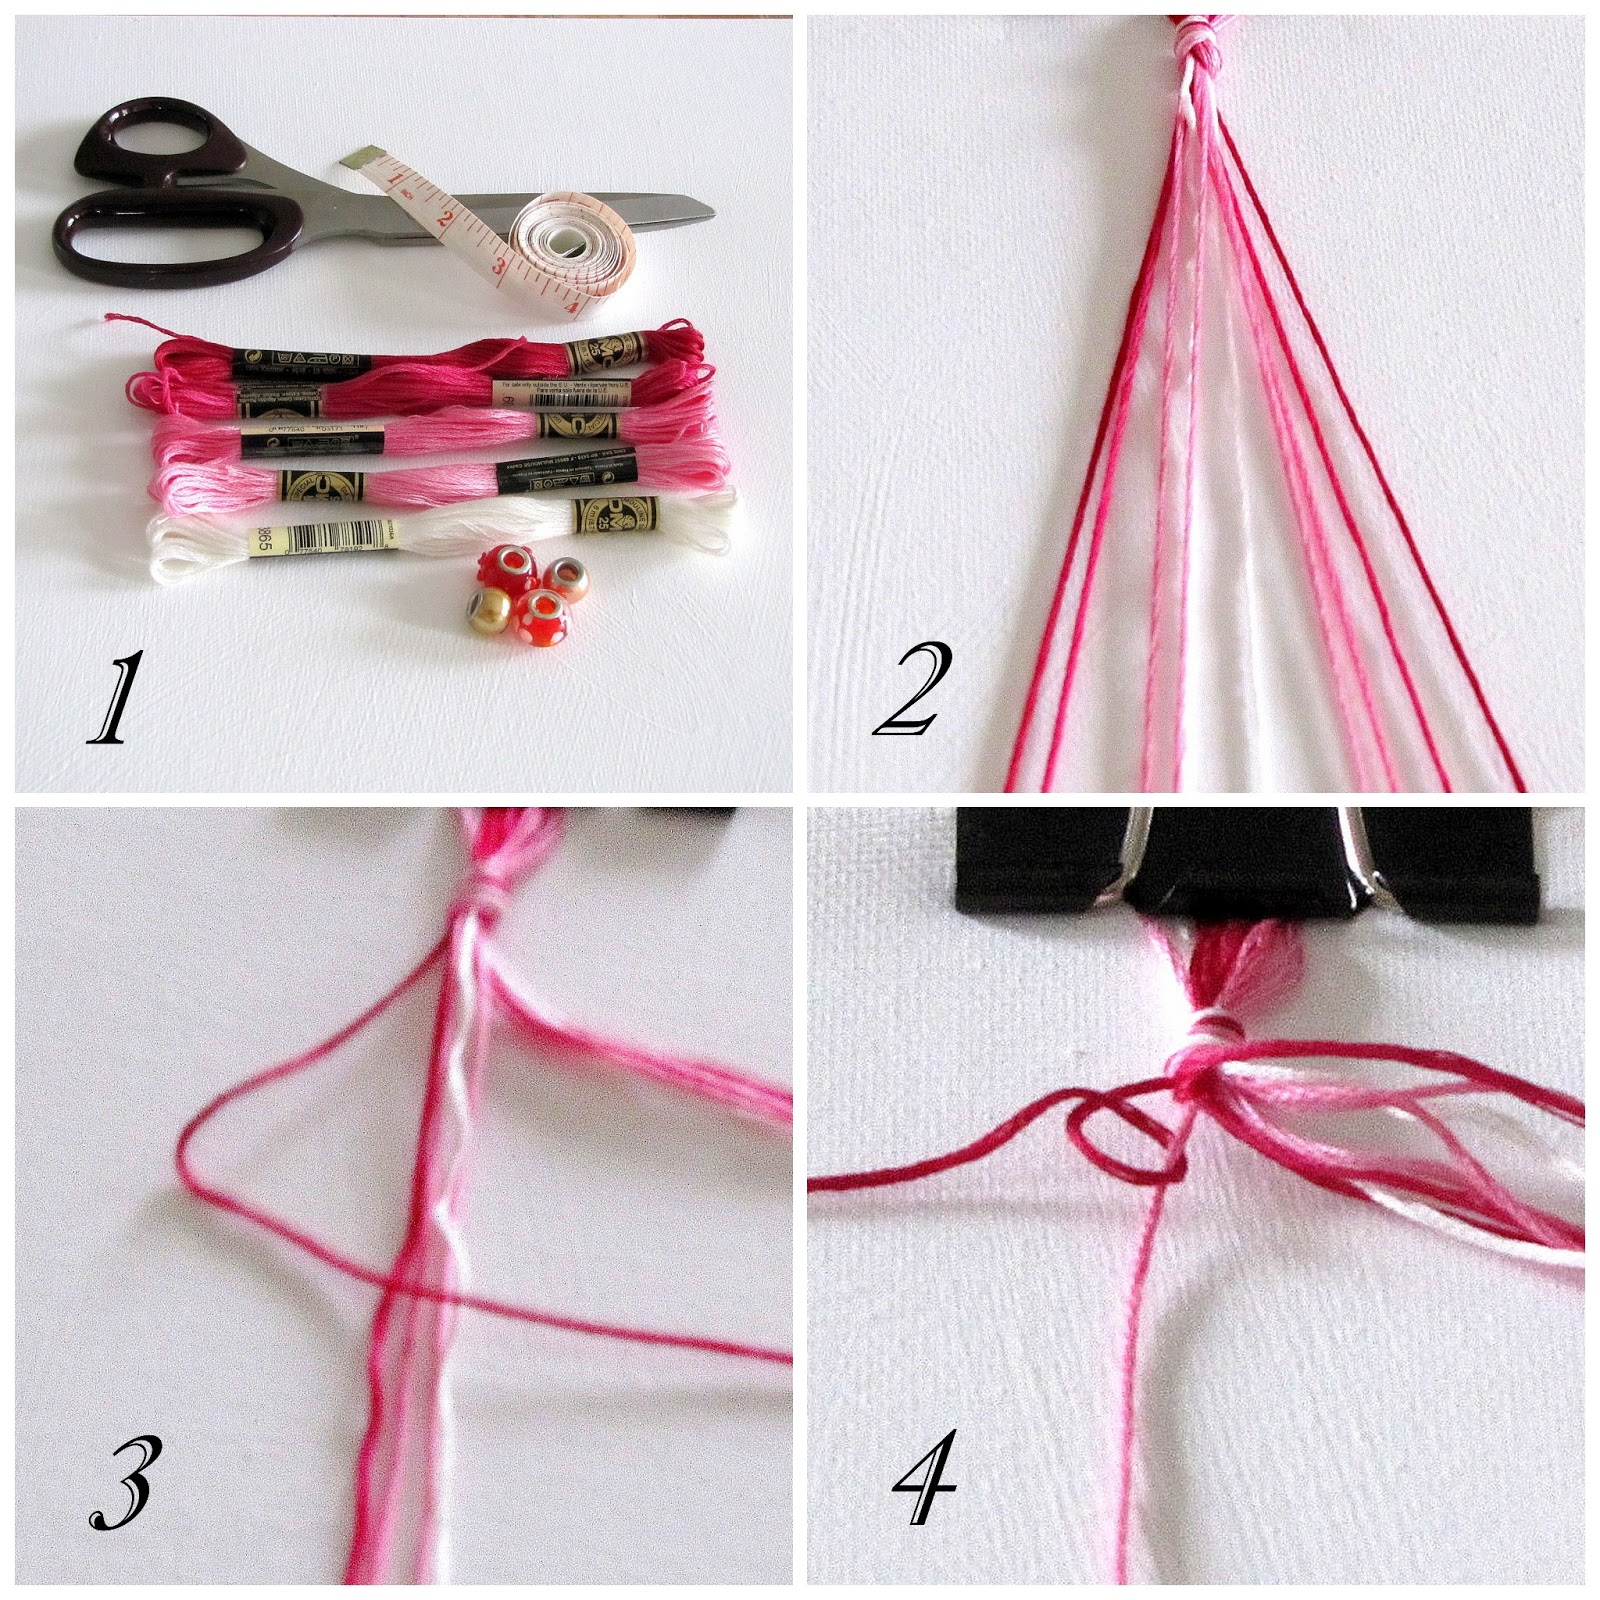 diy homely embroidery thread beads way cooler than fantastic by that makaroka are random bright com bracelets friendship bracelet with design inpiration floss glamorous